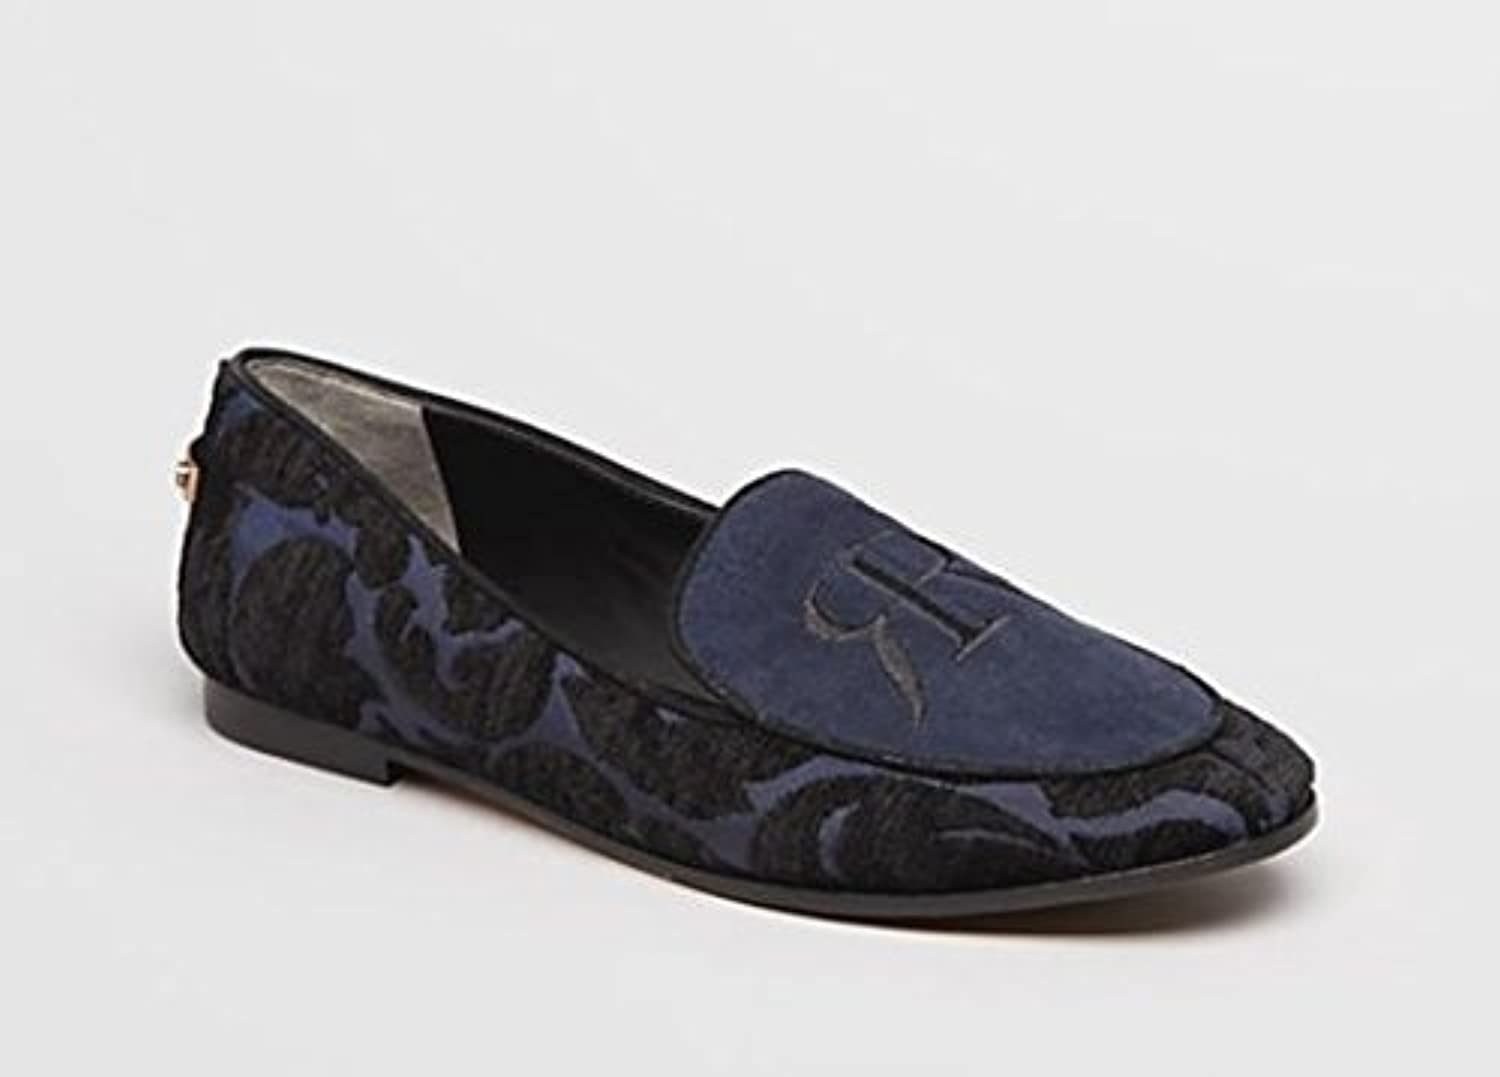 Rachel Roy Gracie Smoking Flat Black Navy Women's 8 M US